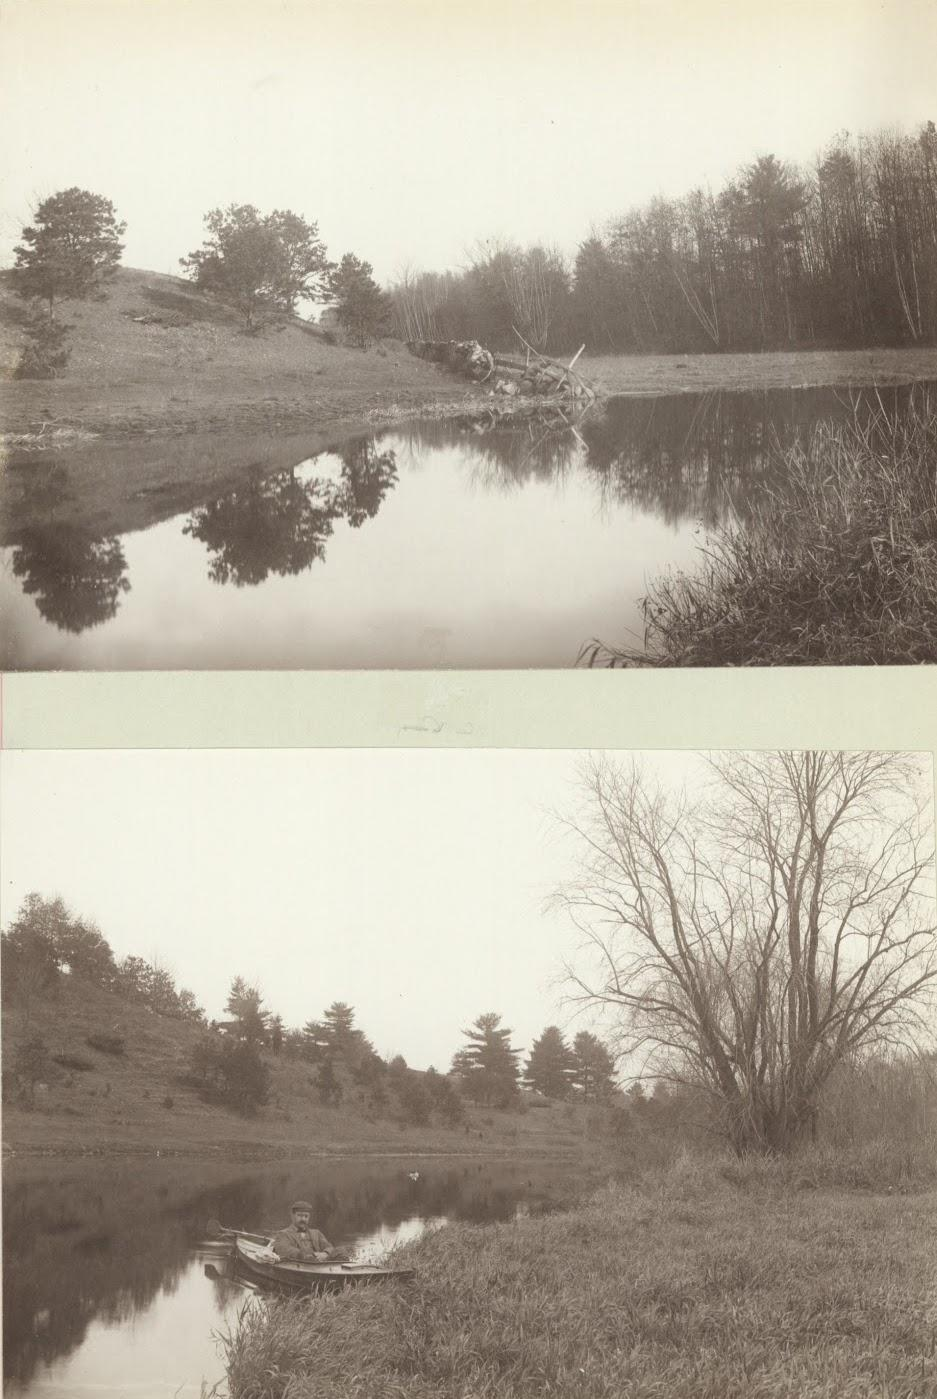 Two images of river, one with man in canoe.